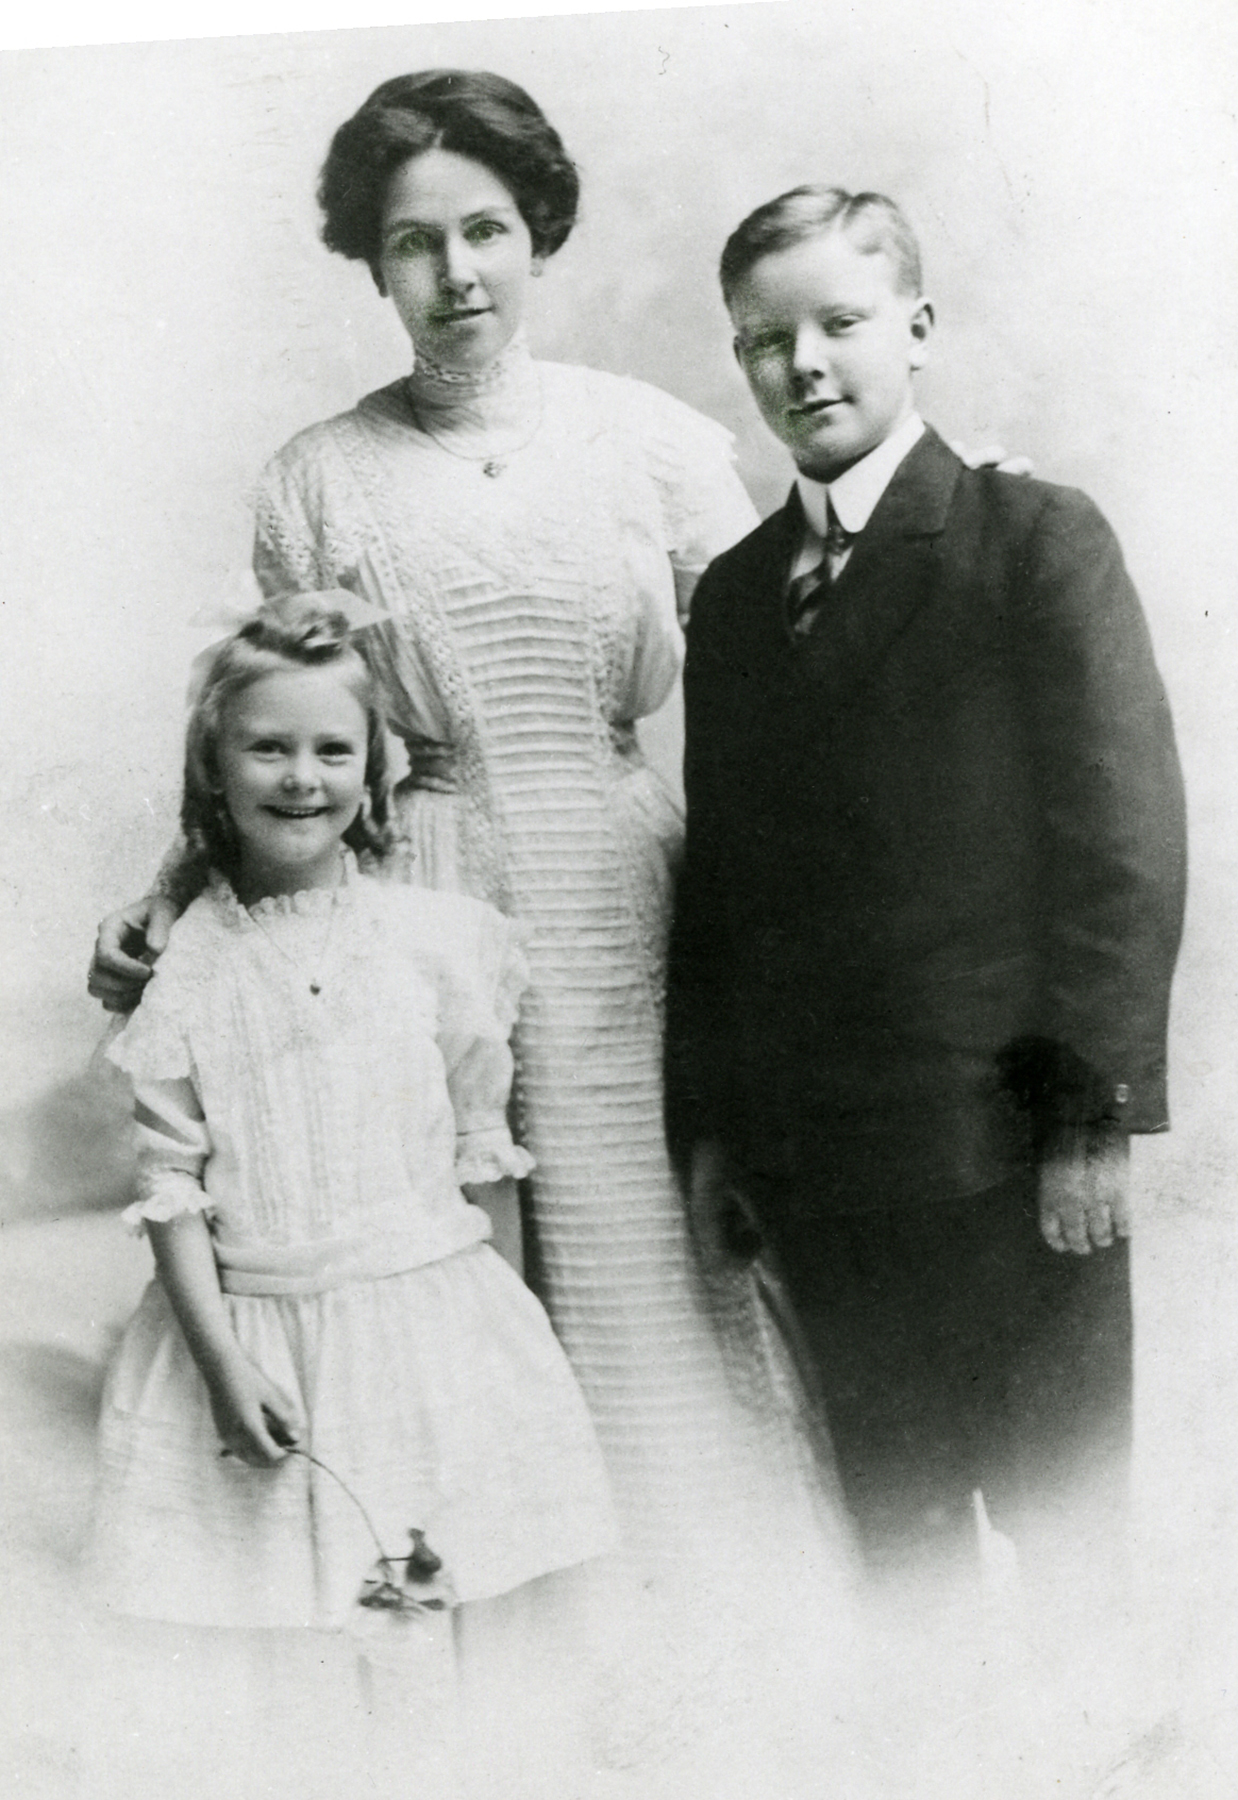 Alan McLeod stands with his mother and sister in an undated photograph. PHOTO: Submitted